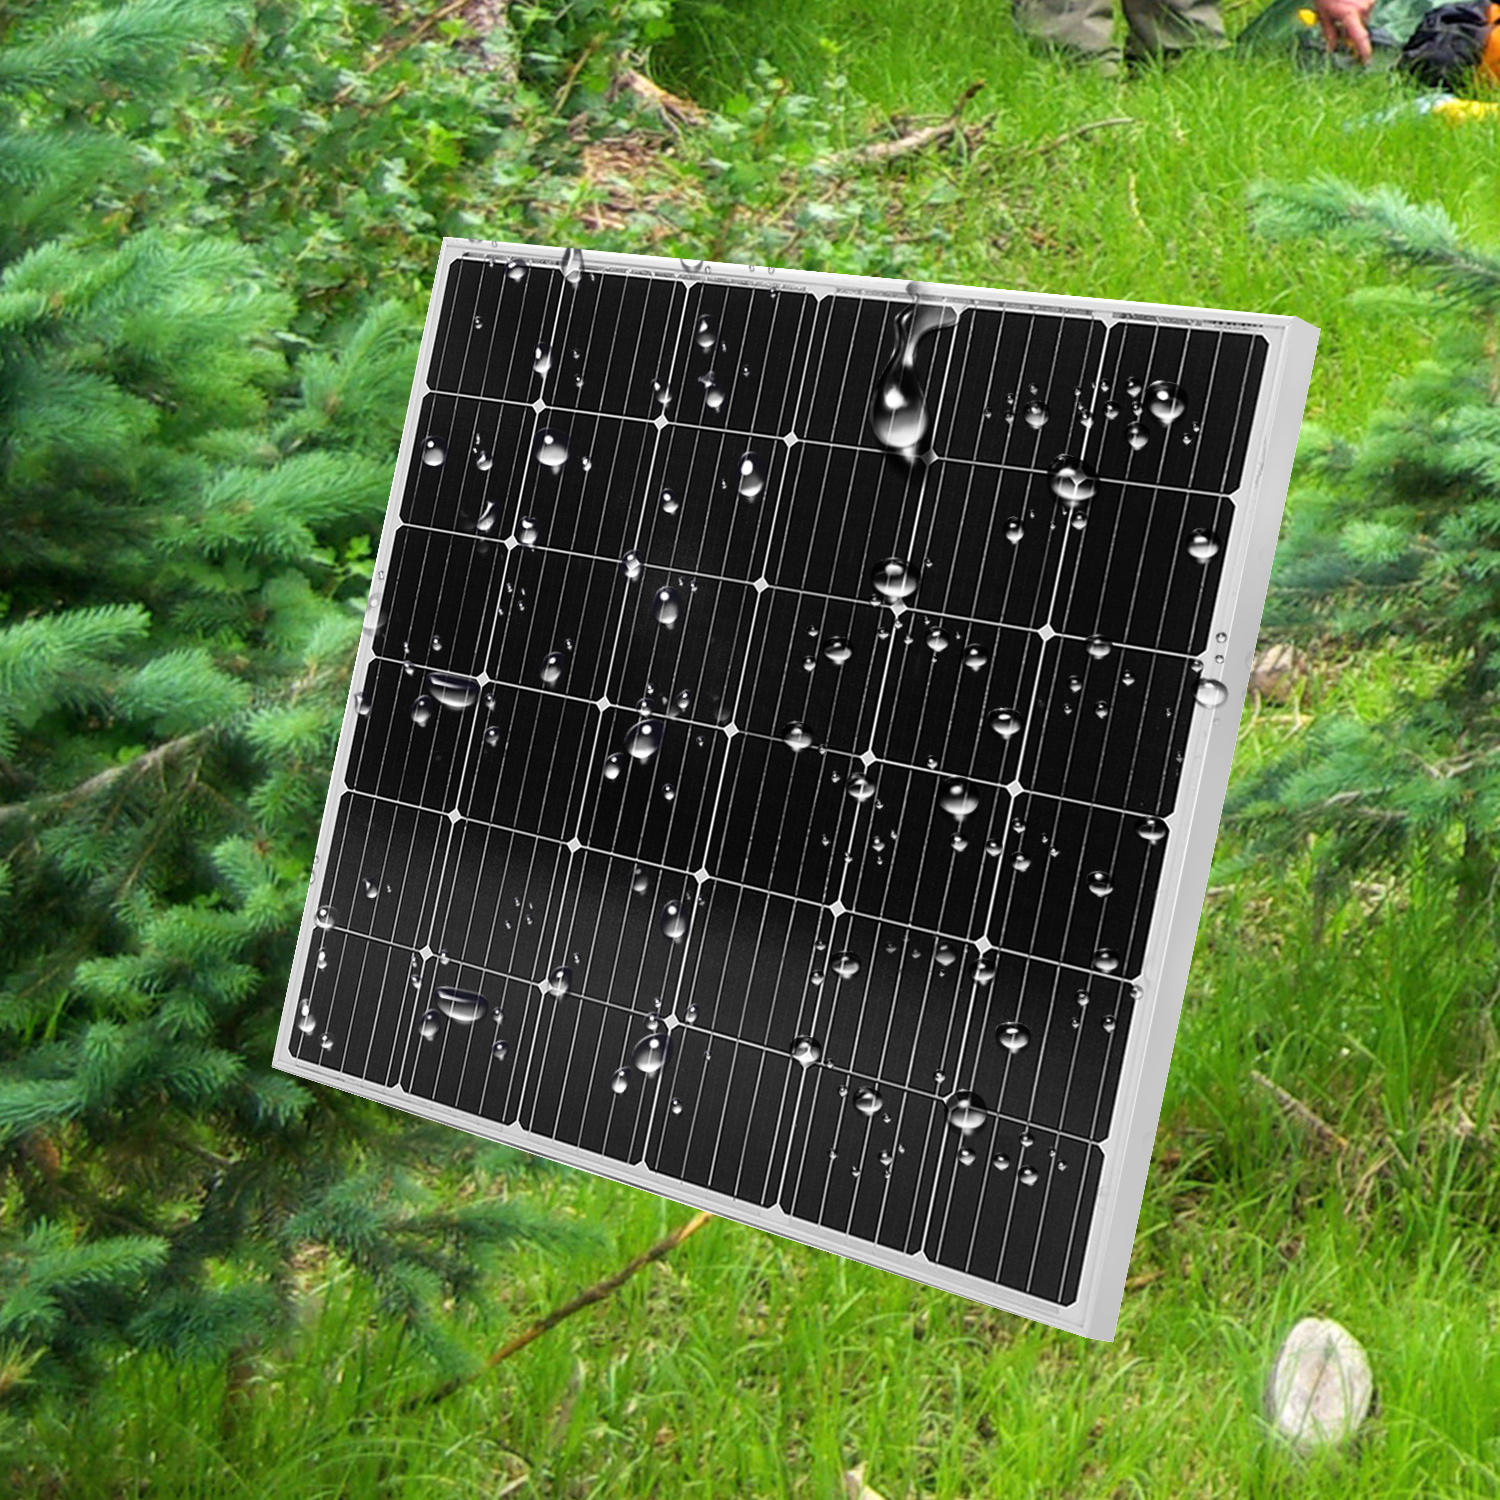 18V <font><b>150W</b></font> monocrystalline <font><b>solar</b></font> <font><b>panel</b></font> rigid waterproof <font><b>solar</b></font> <font><b>panel</b></font> high efficiency <font><b>solar</b></font> <font><b>panel</b></font> for home support 12V battery image